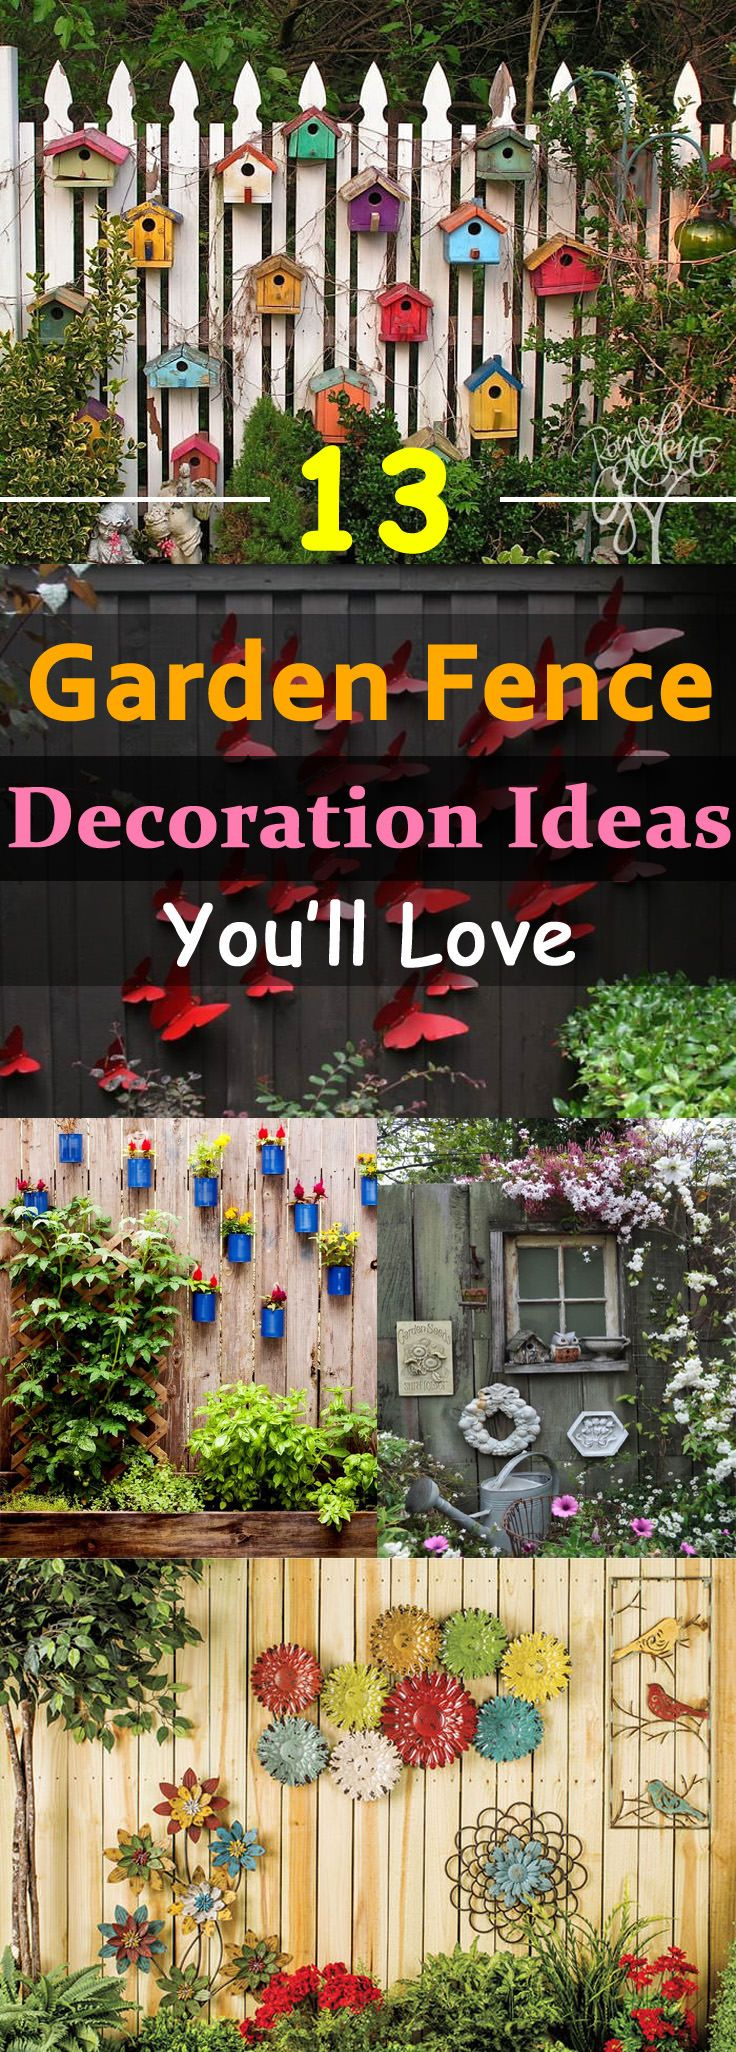 Decorative garden ornaments - 13 Garden Fence Decoration Ideas To Follow